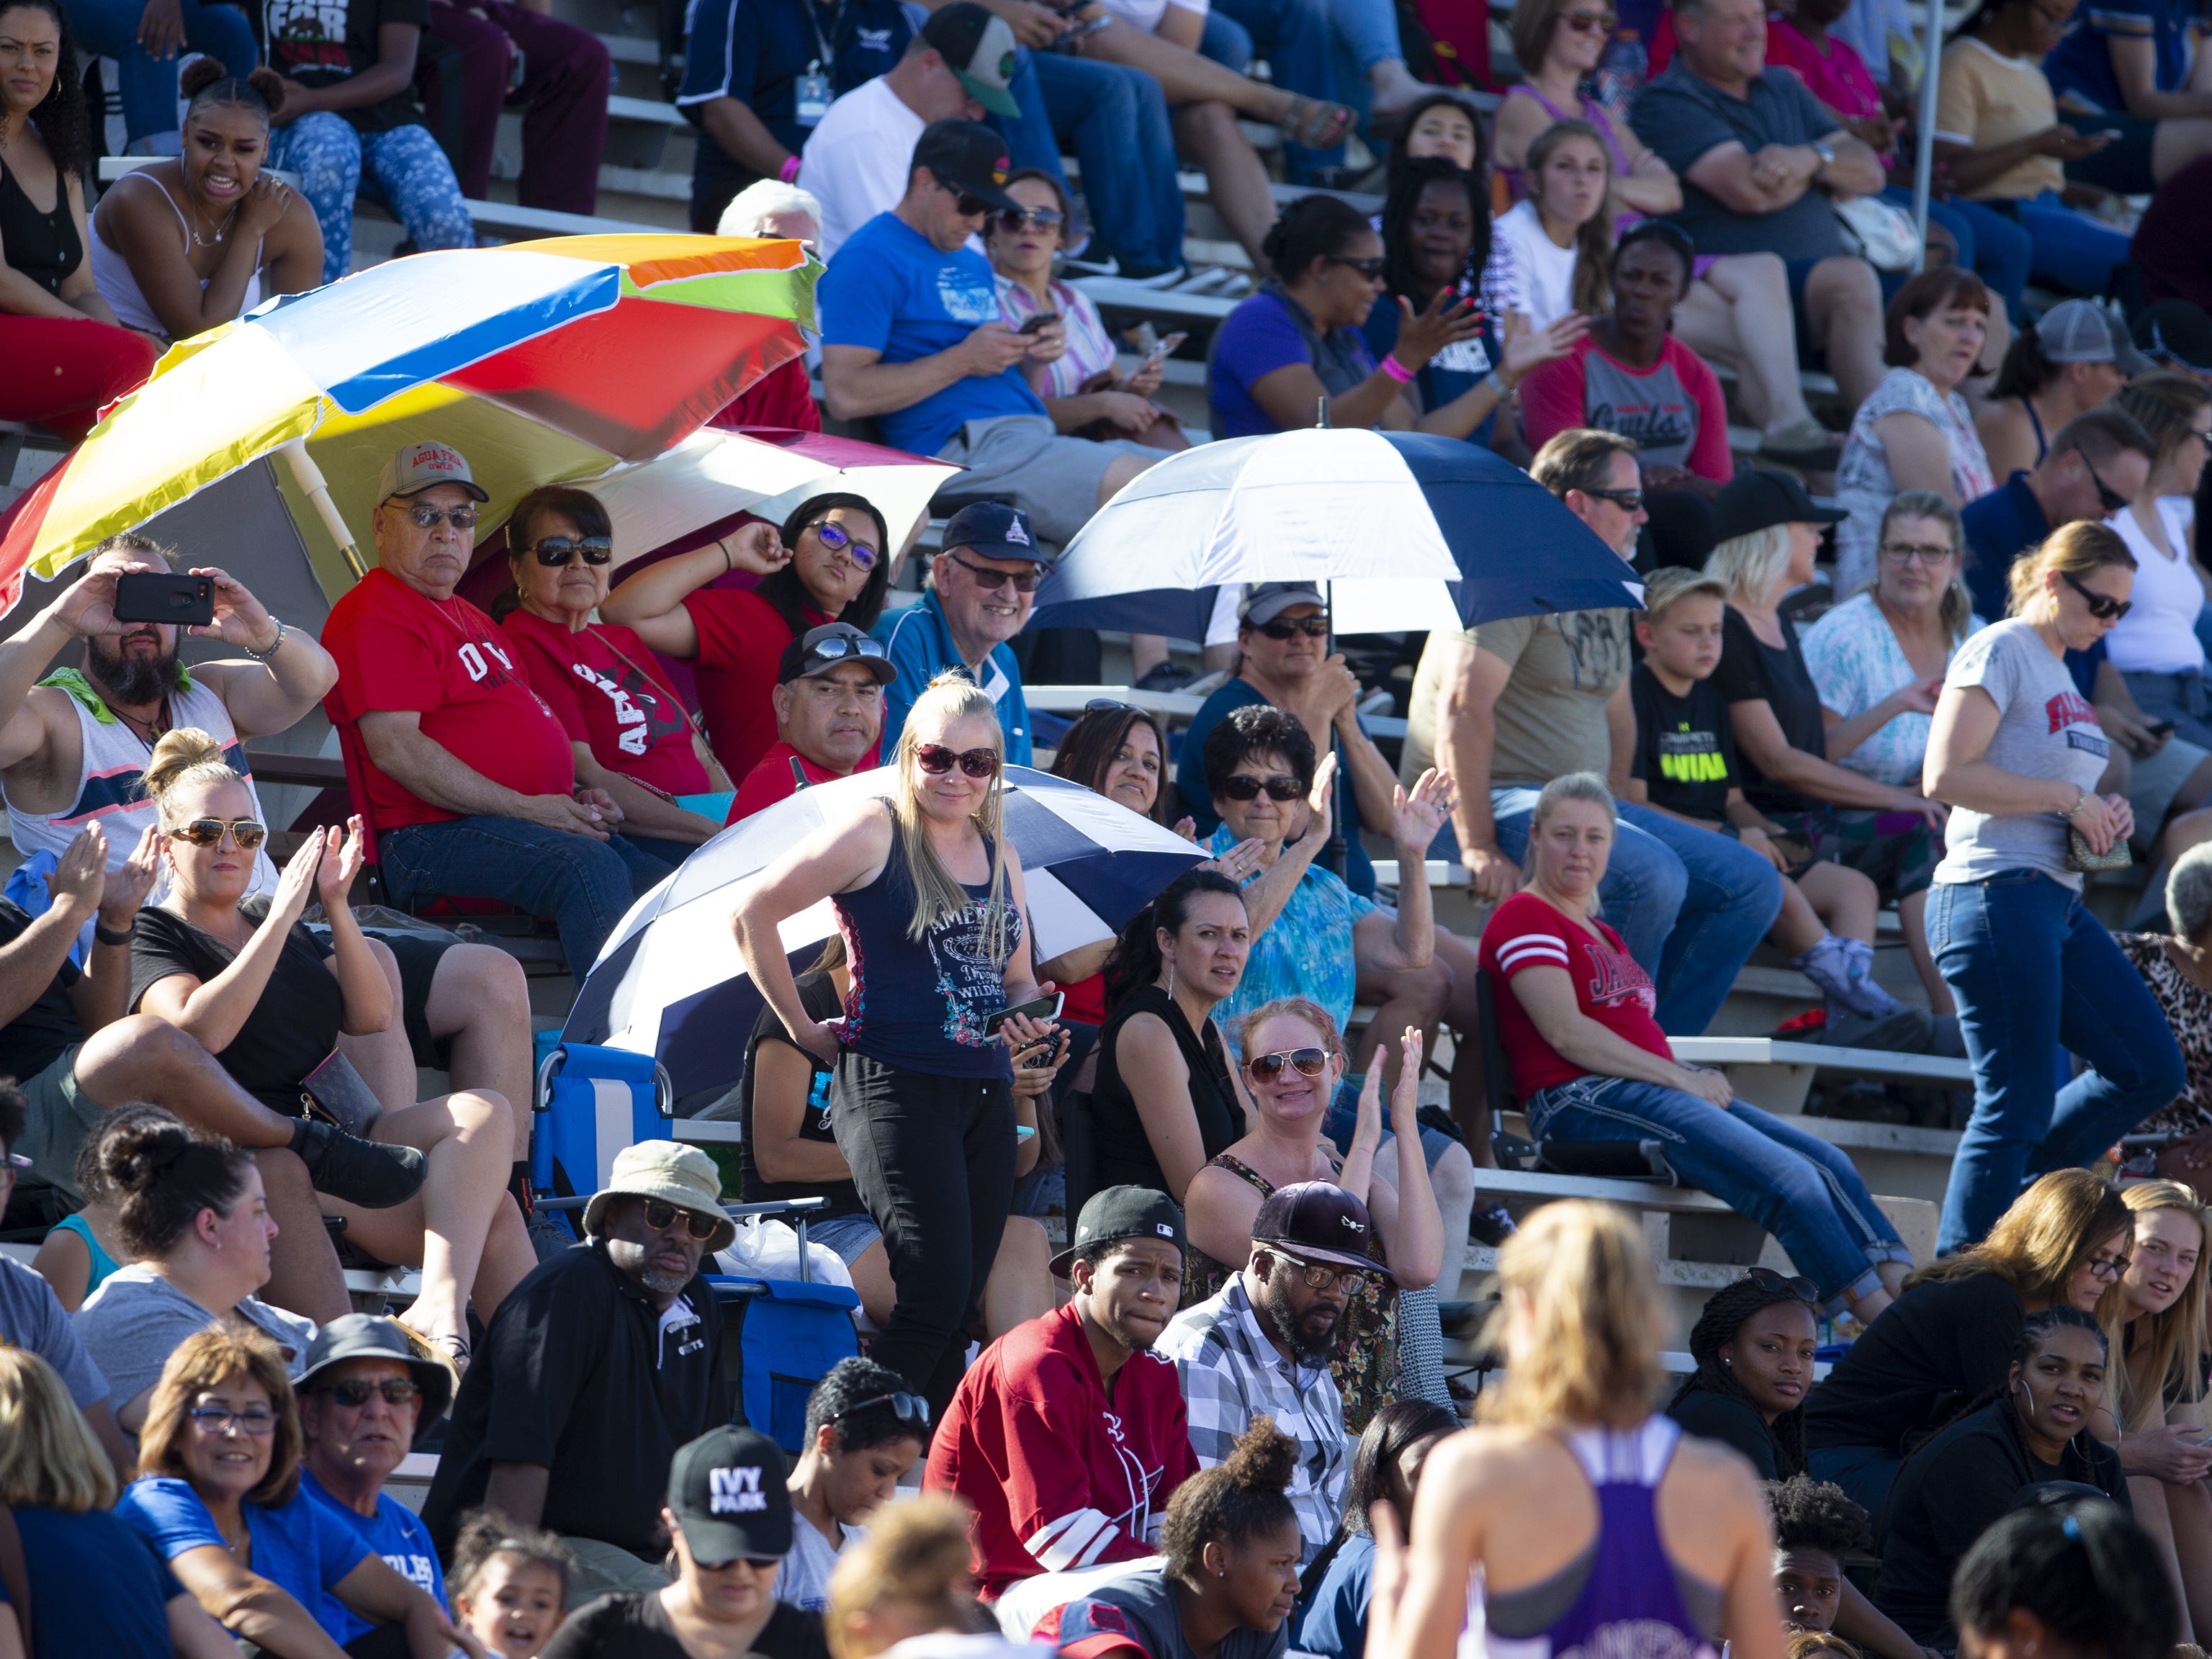 Fans cheer during the state track and field meet at Mesa Community college on May 1, 2019.